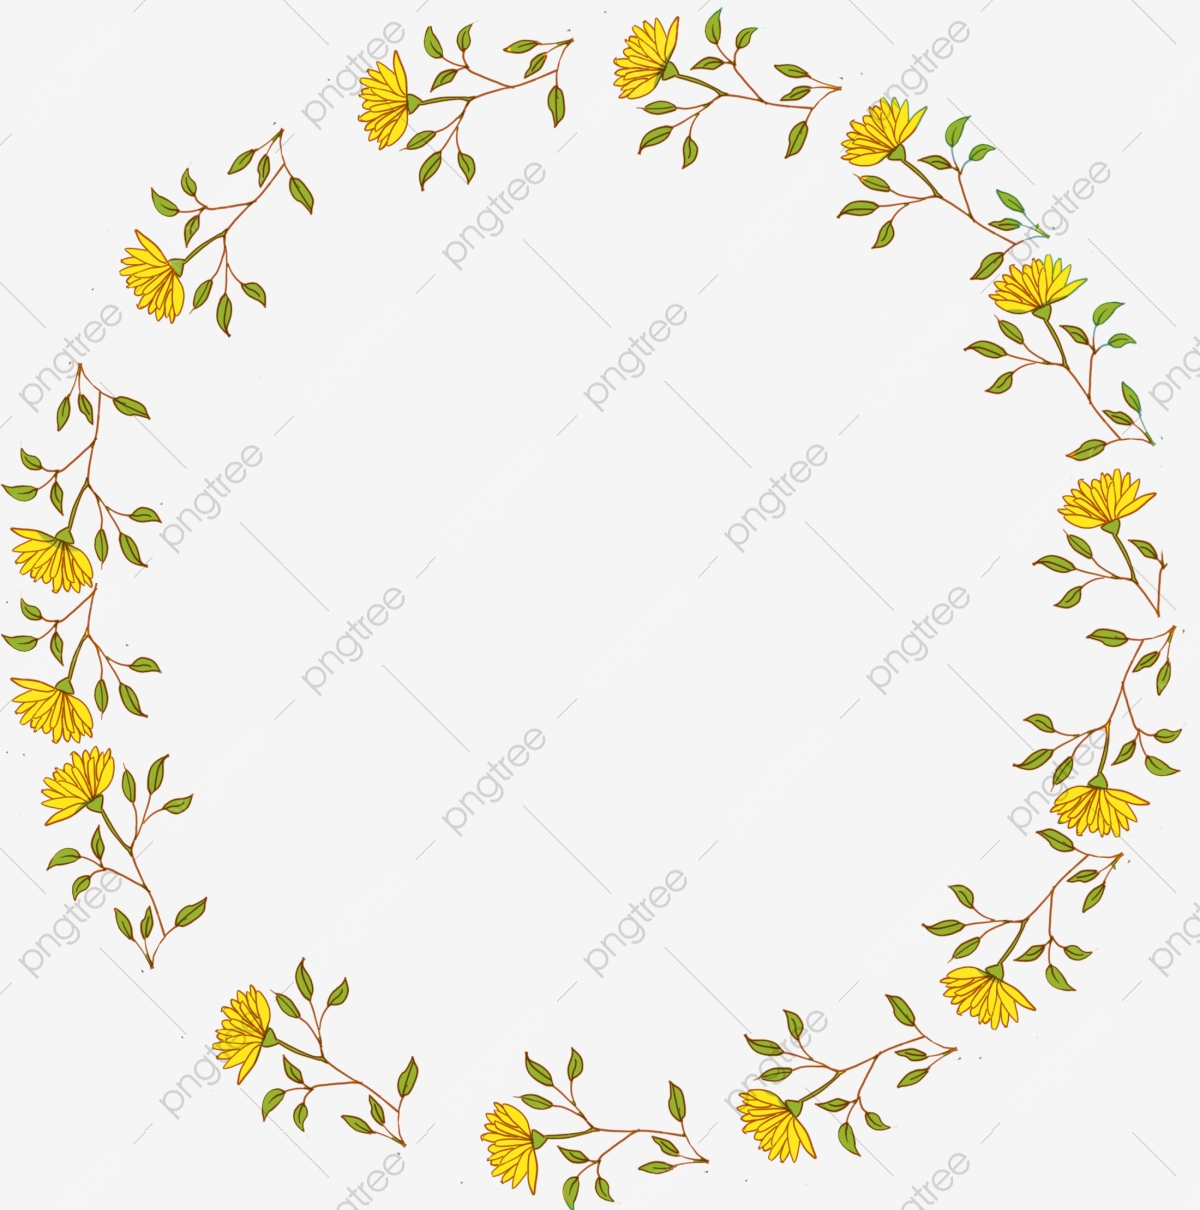 Yellow Flower Branch Border Decoration Yellow Flowering Branches